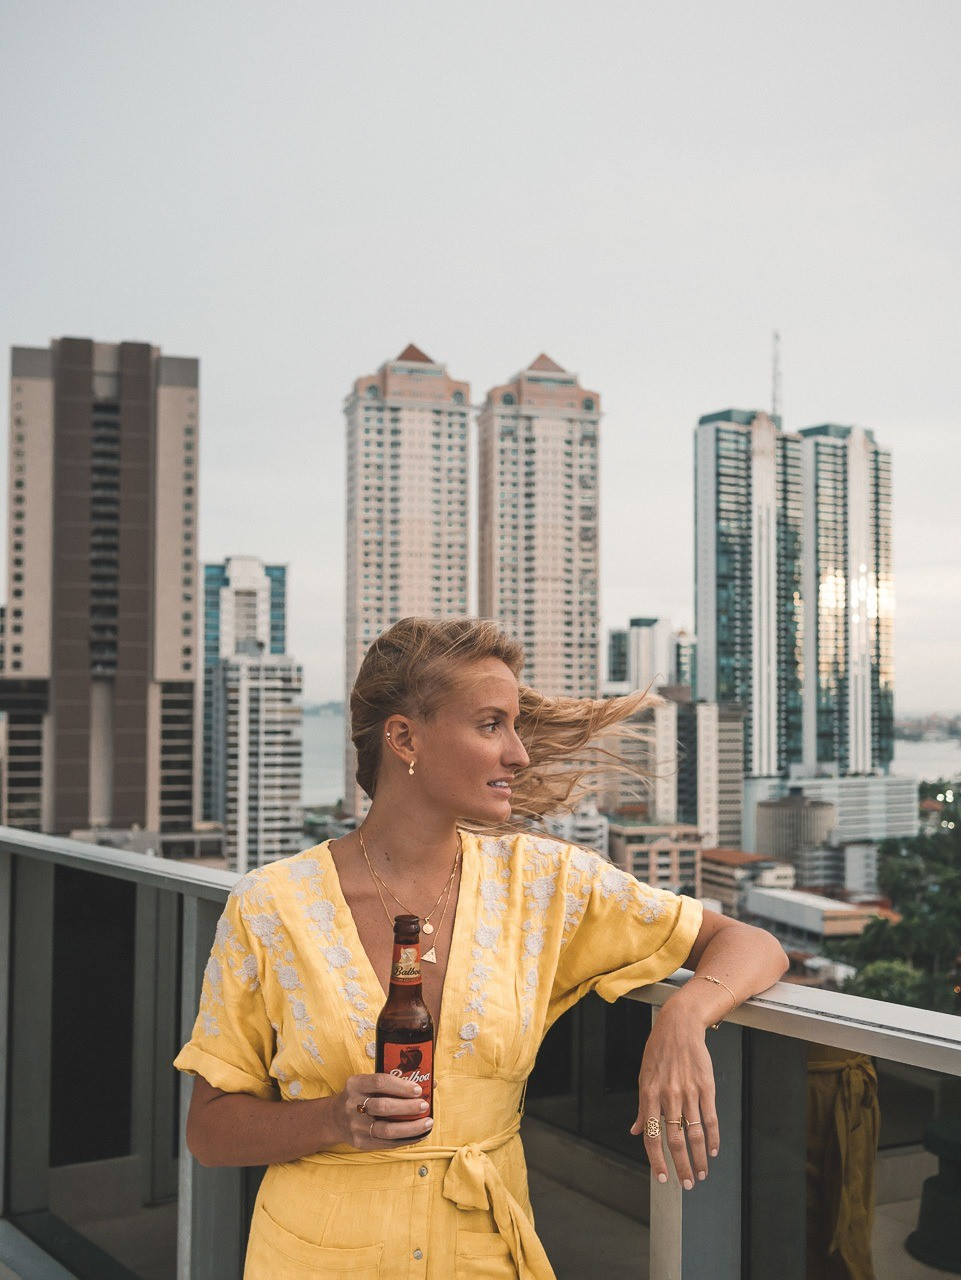 37 things to do in panama that are actually cool - hippie in heels